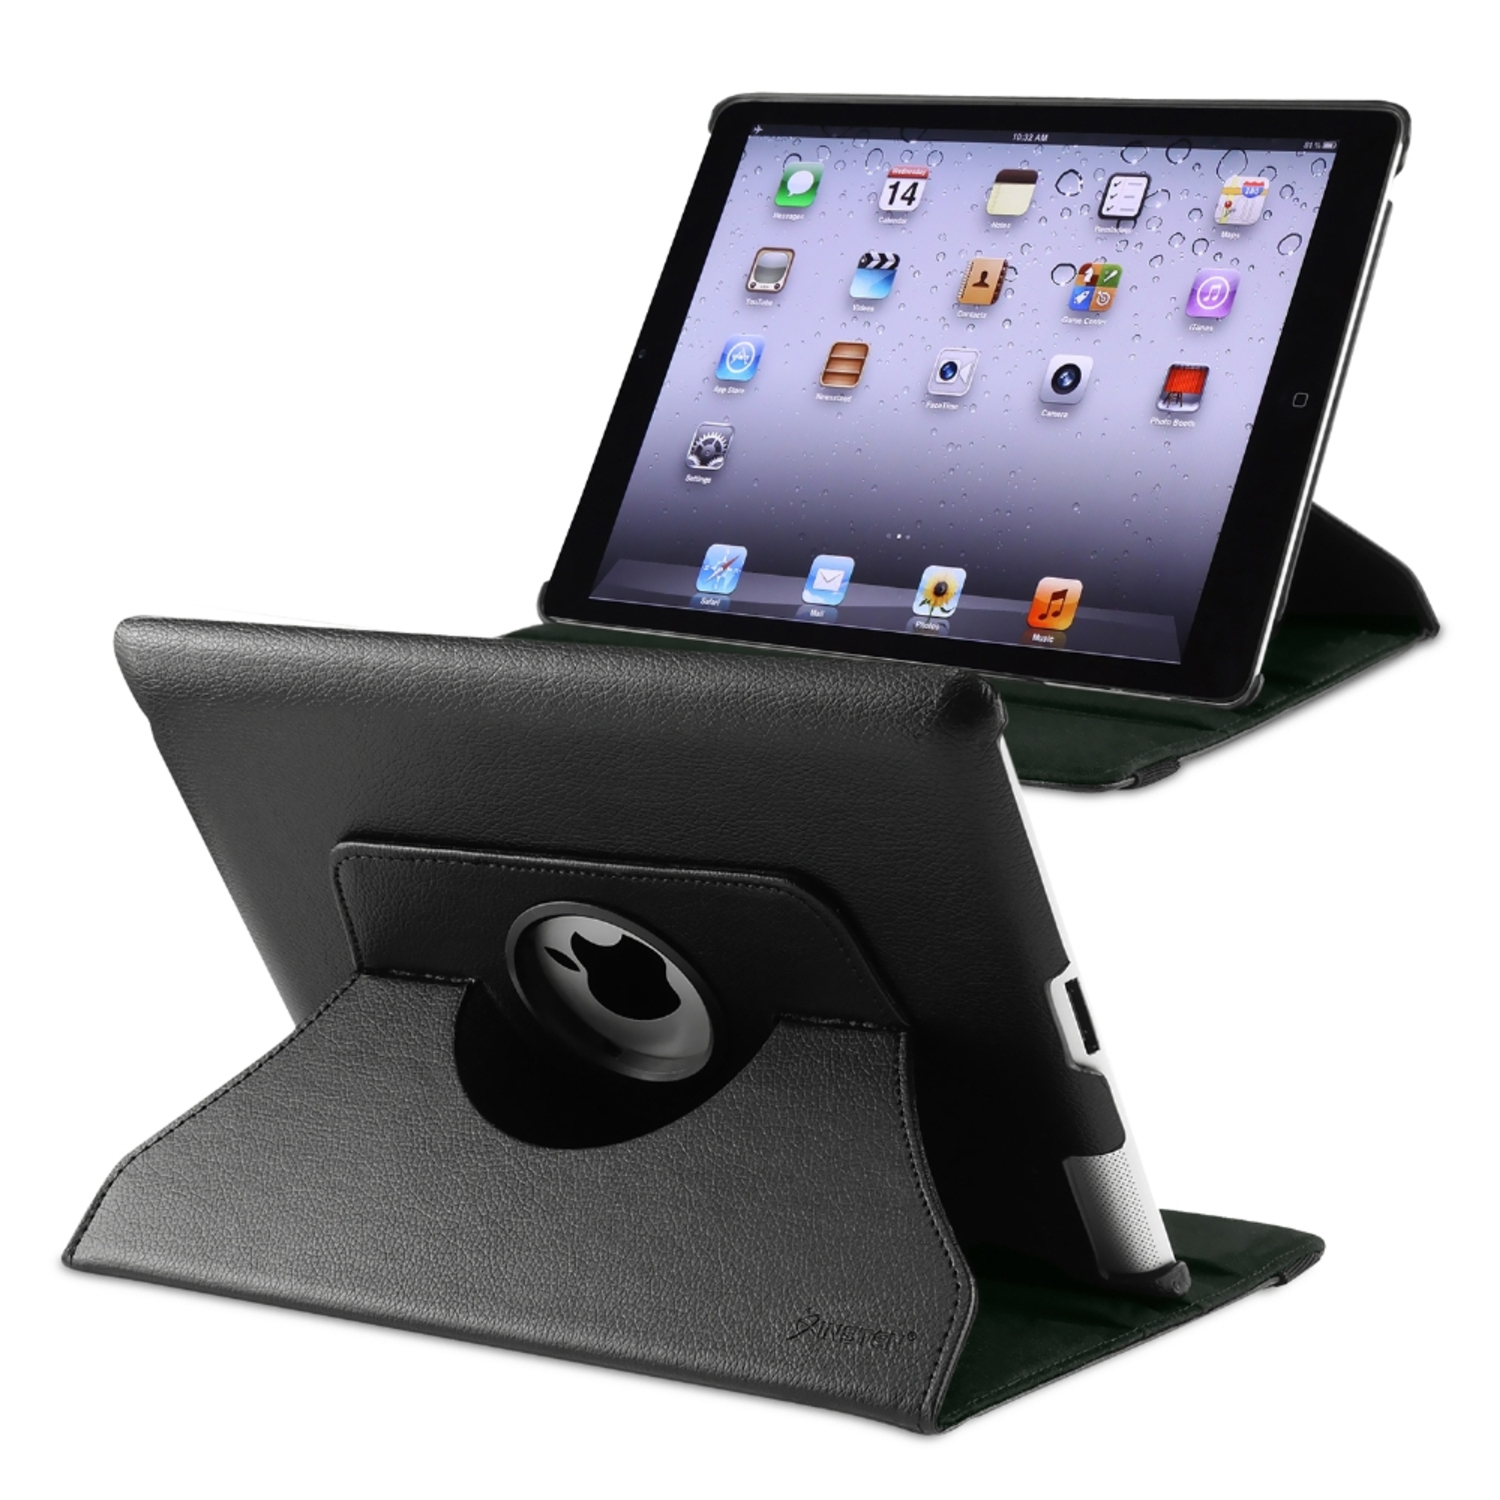 Insten 360-degree Swivel Leather Case For Apple iPad 2 / 3 / 4, Black